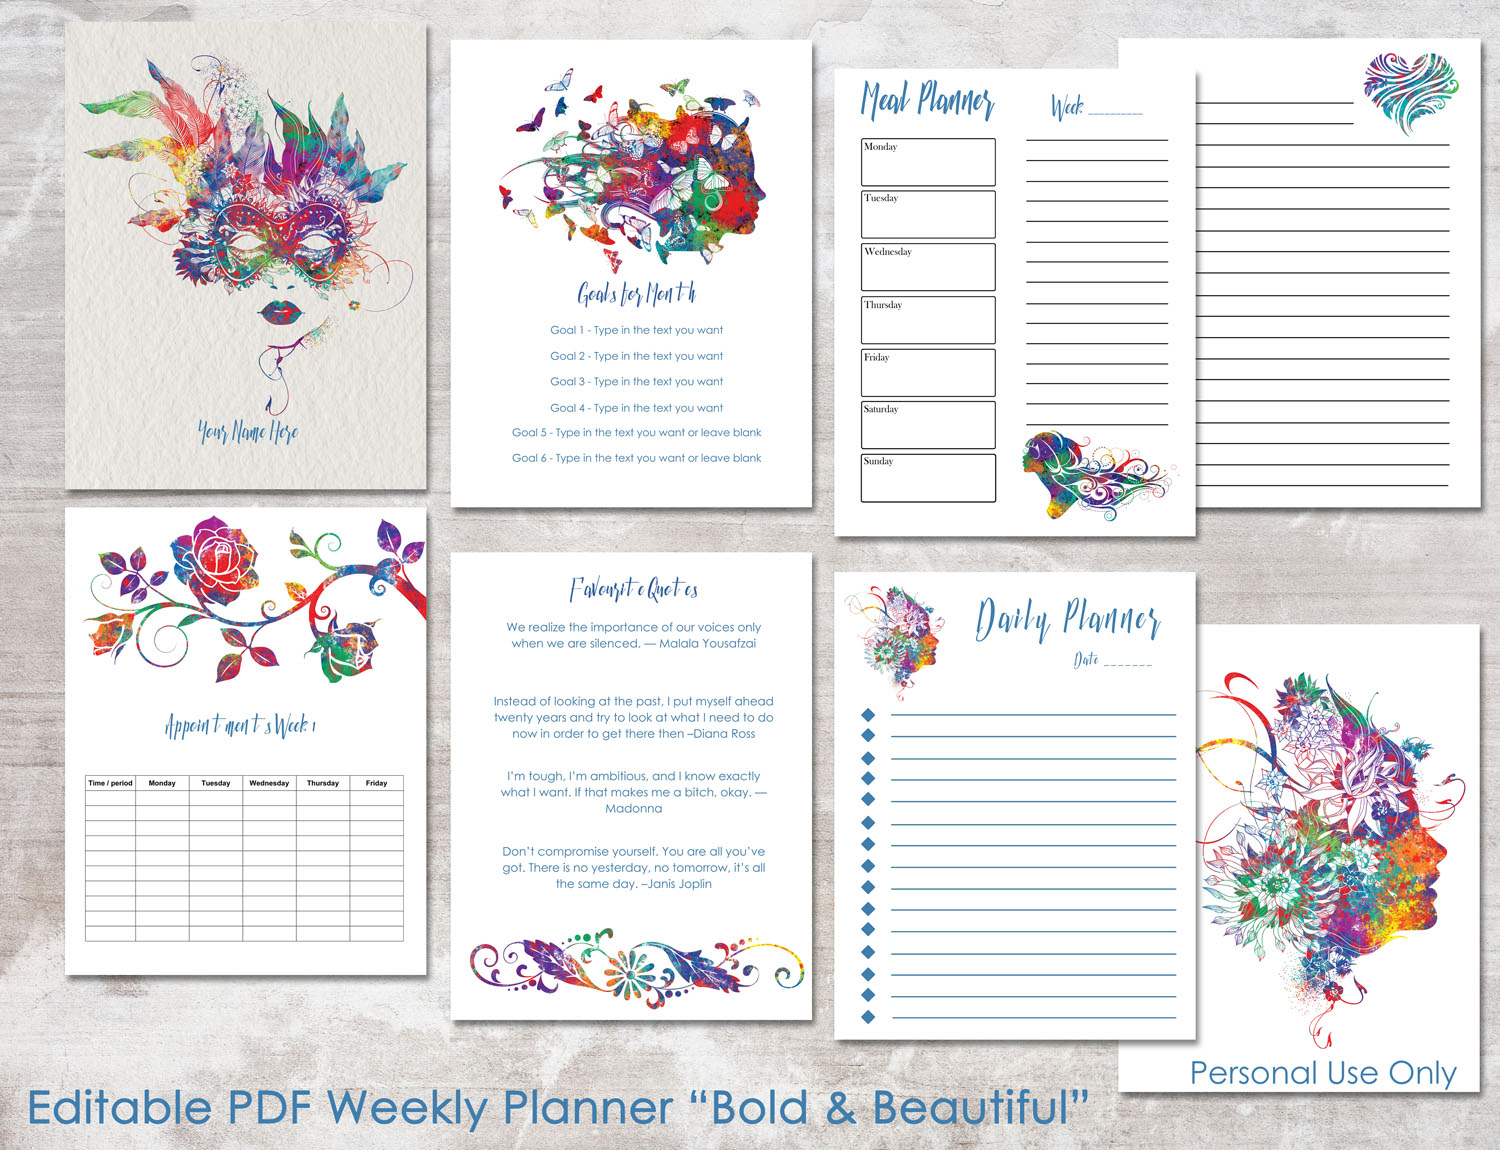 photo about Week Planner Pdf referred to as Formidable Attractive Editable Each day Weekly Planner PDF 8.5 x 11